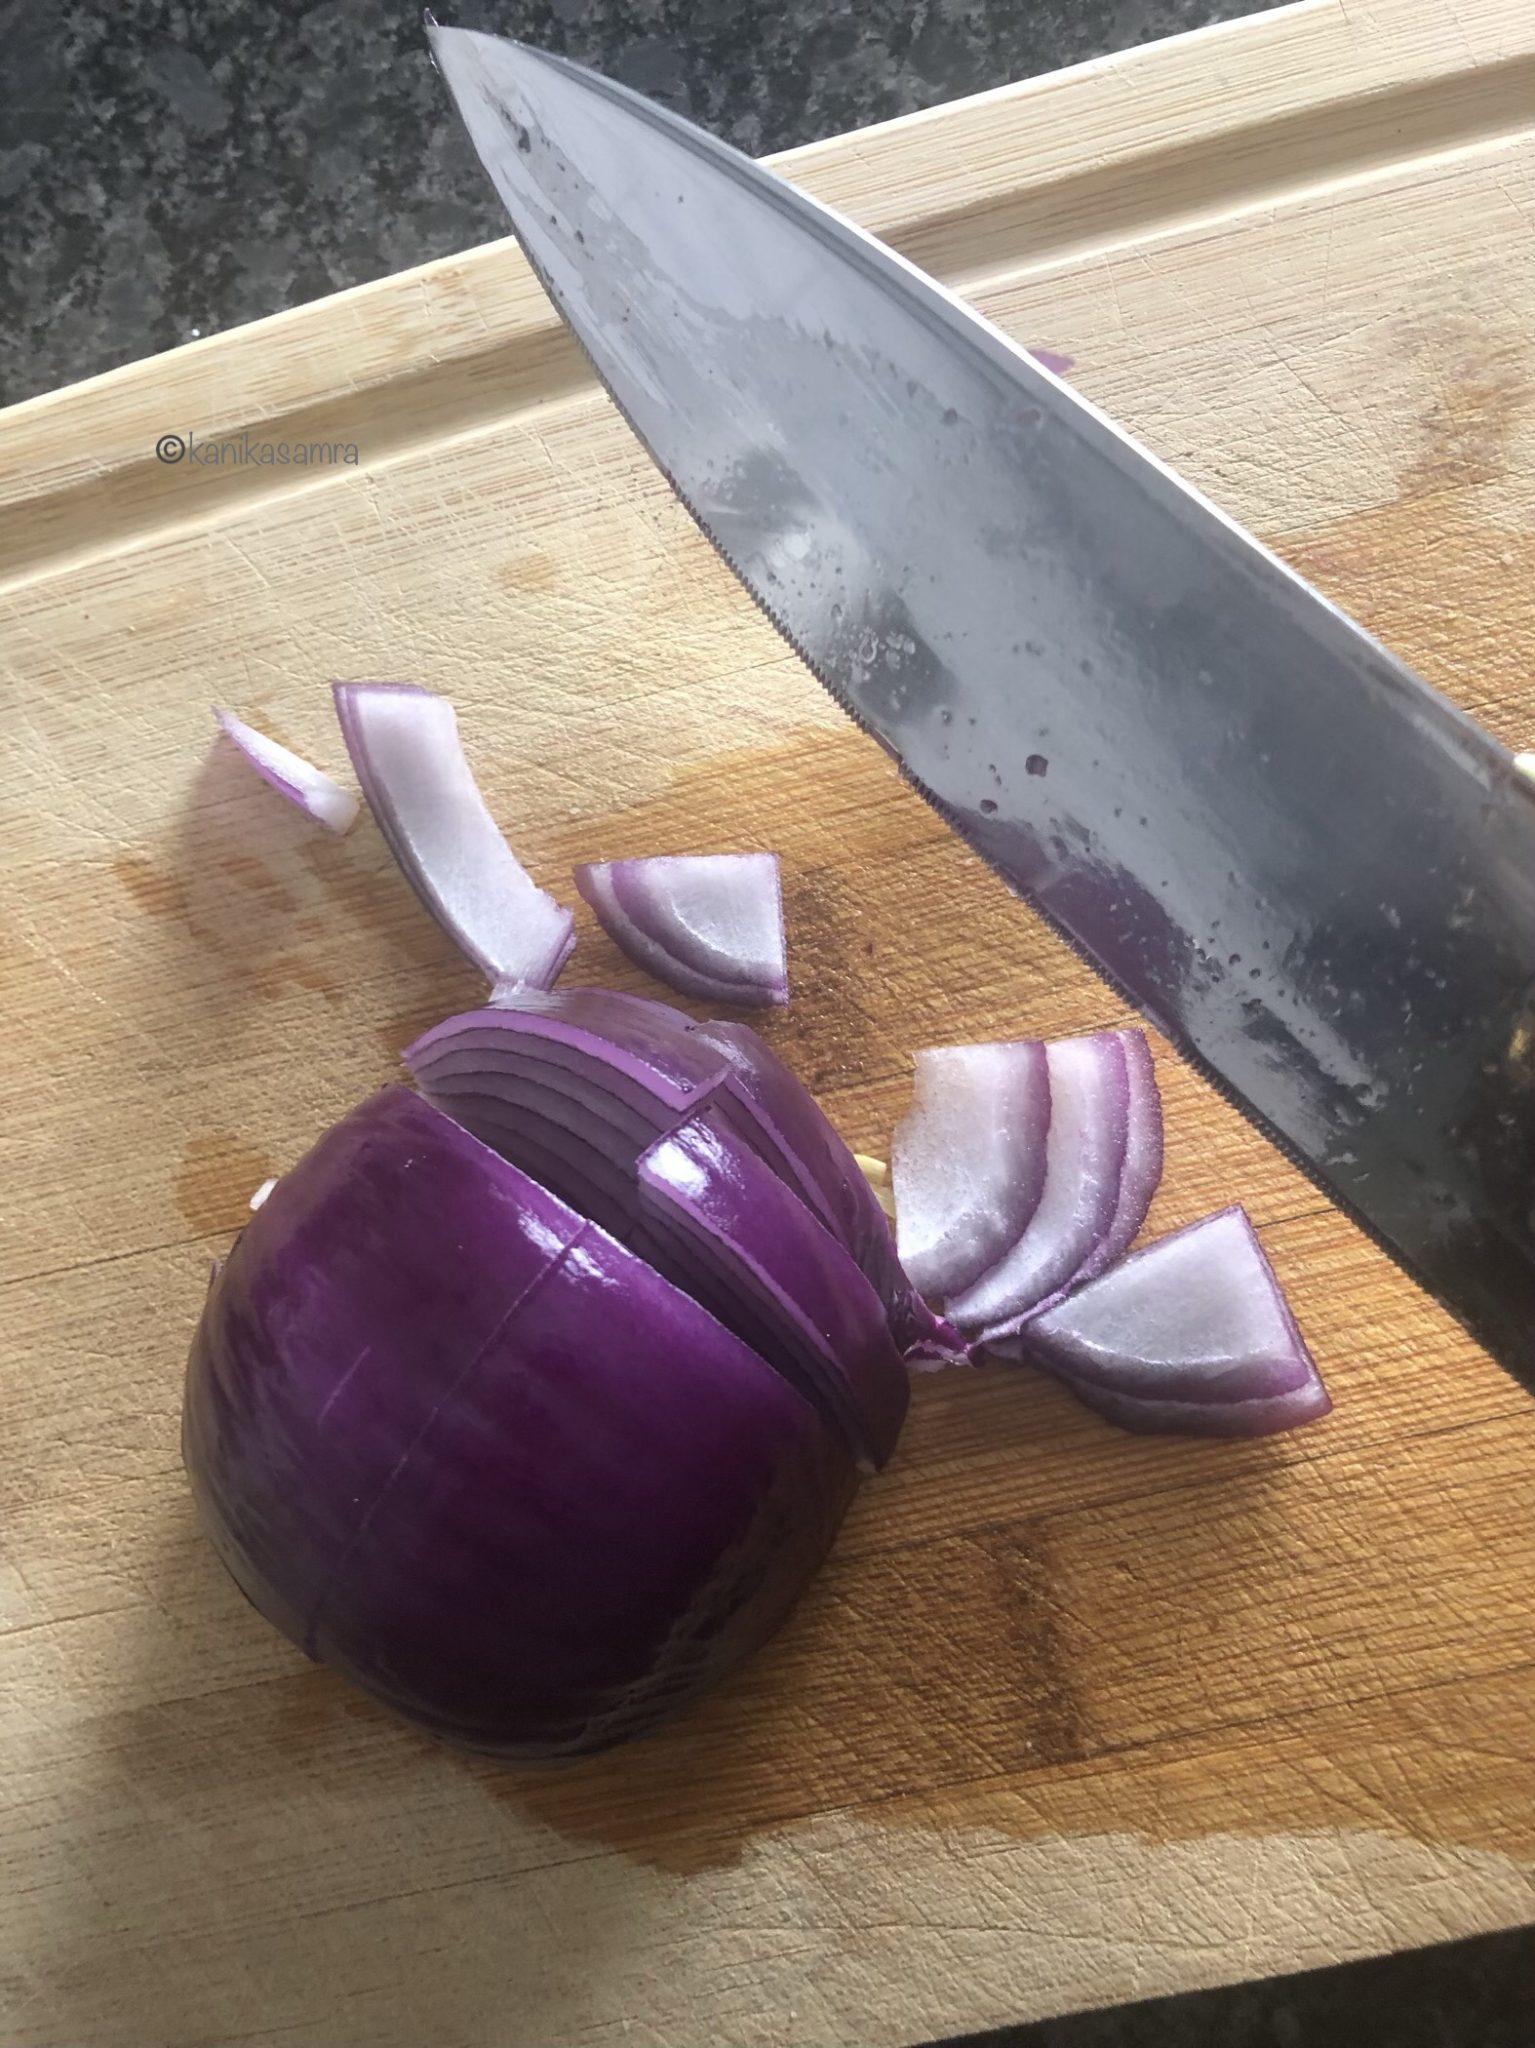 Chopping an onion half